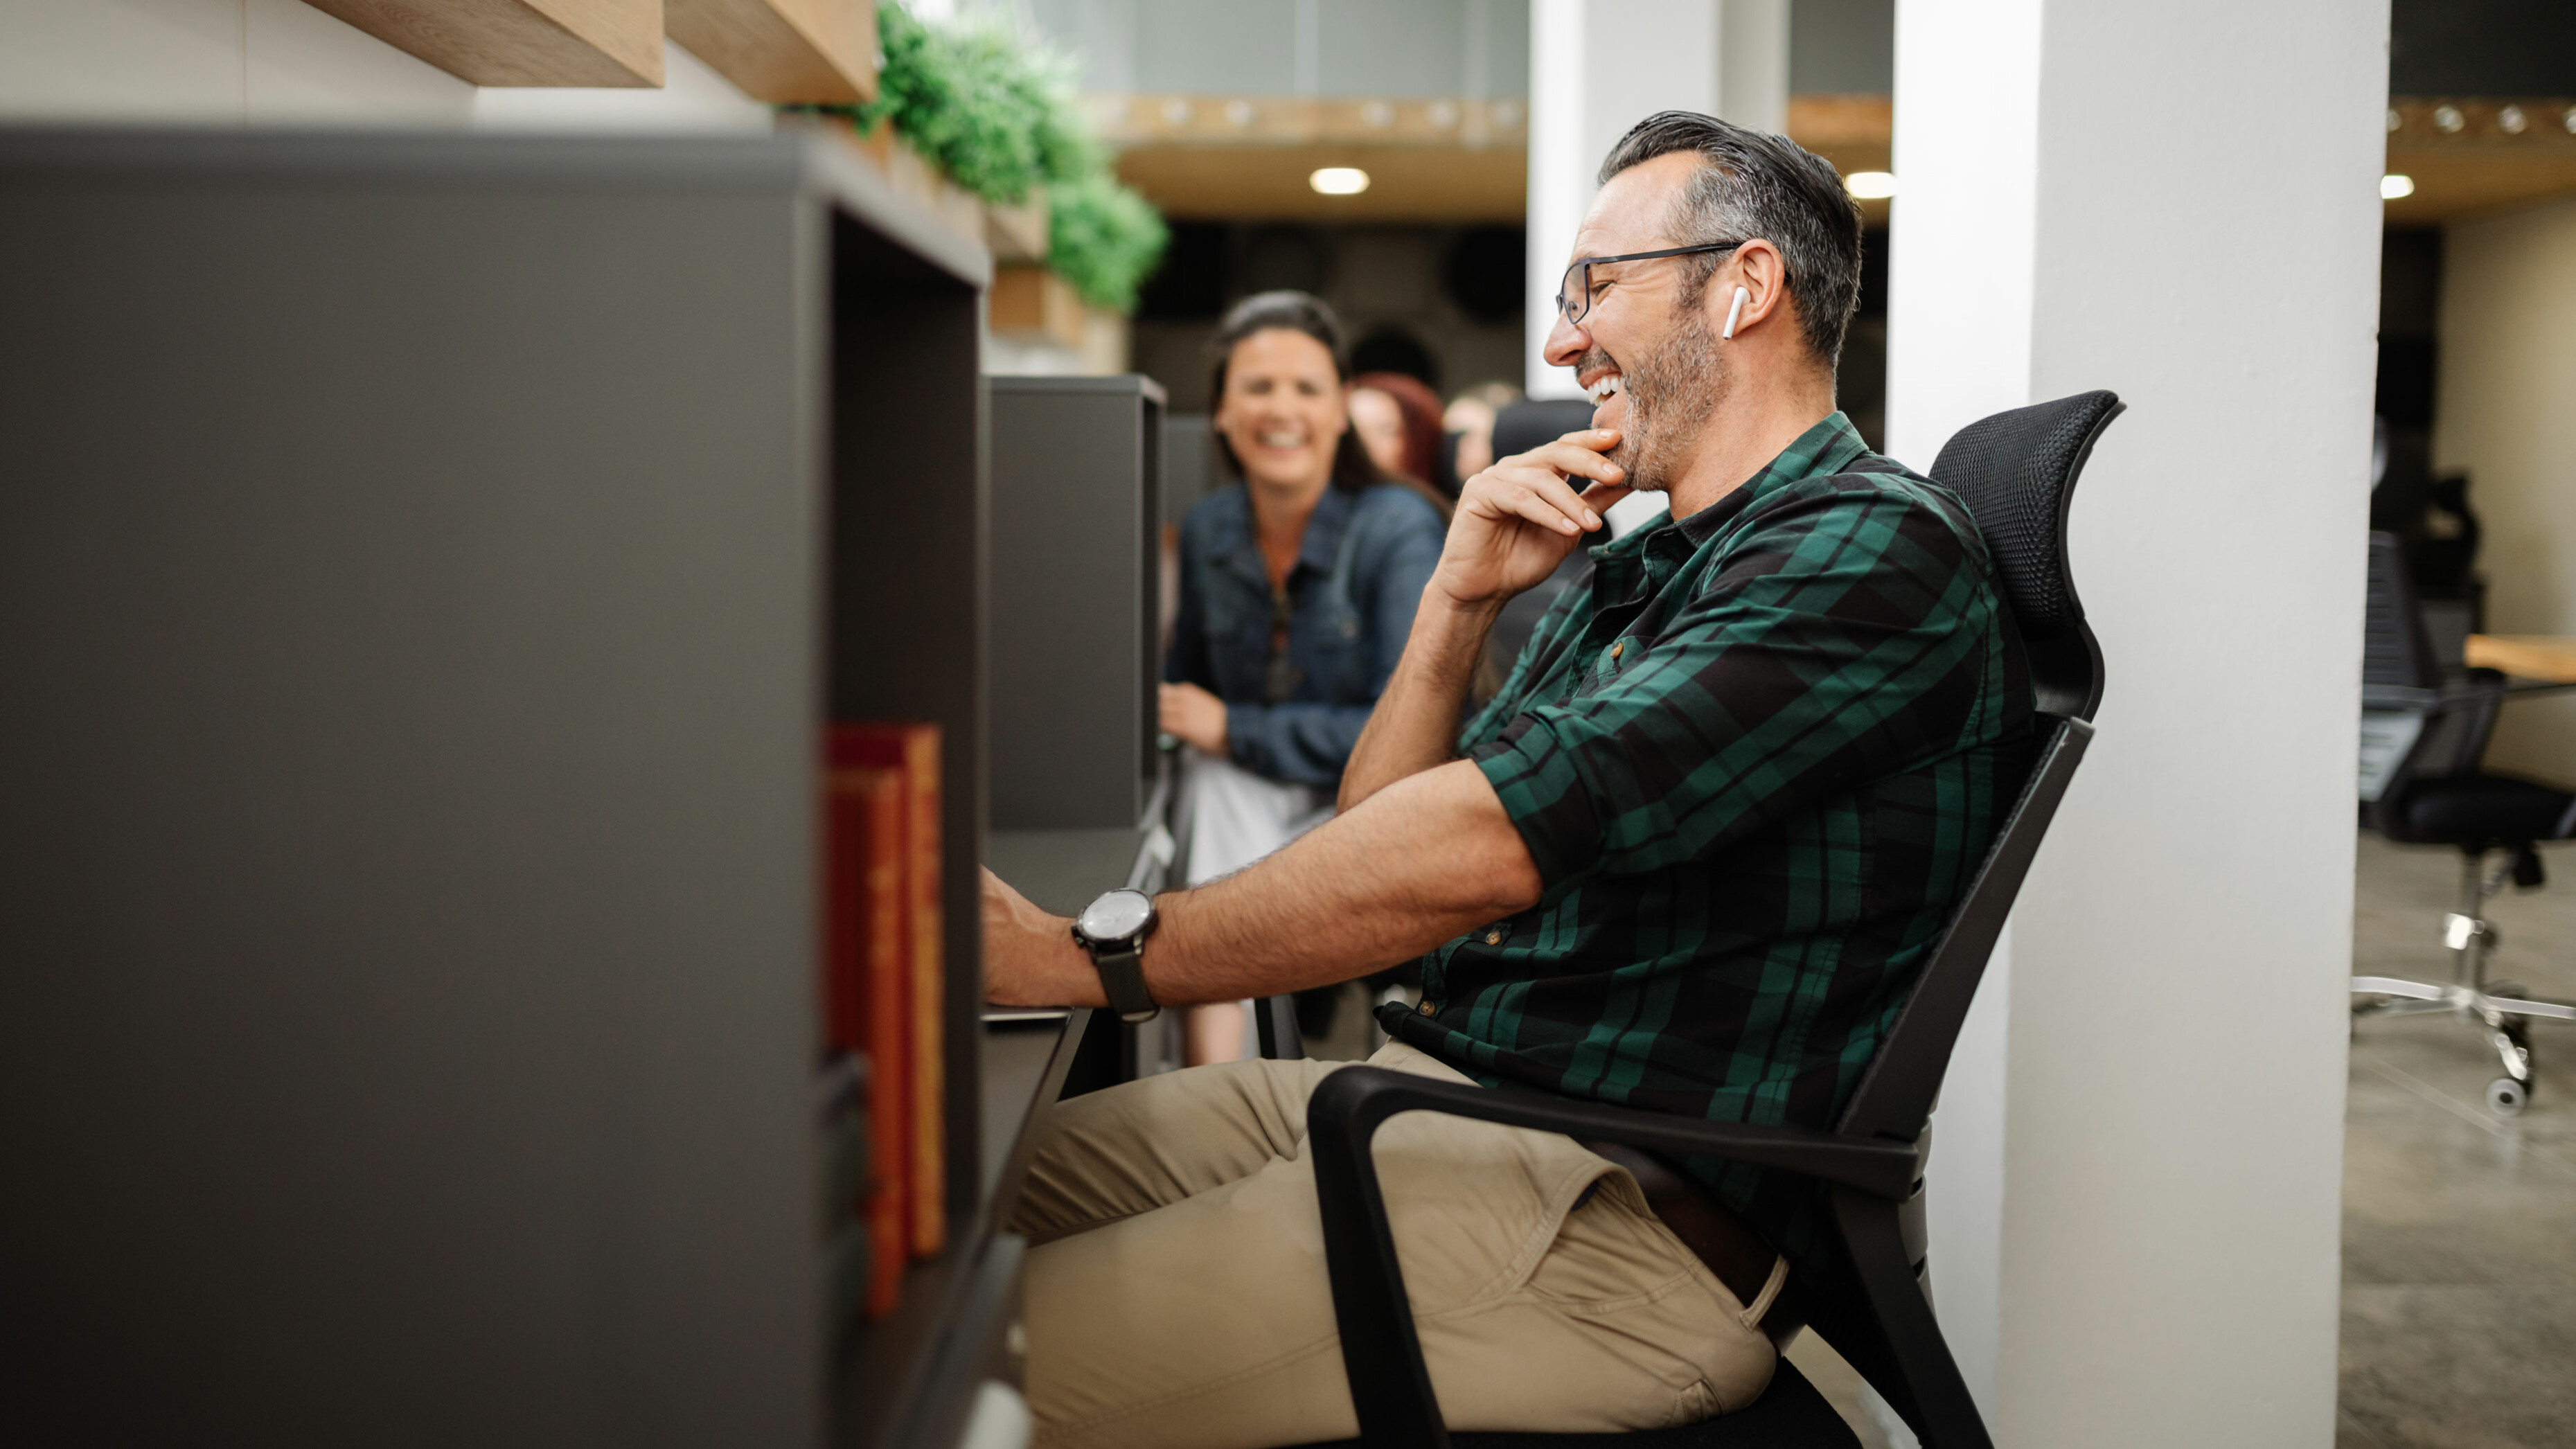 Man sitting at a cubical desk smiling and laughing as coworker next to him smiles